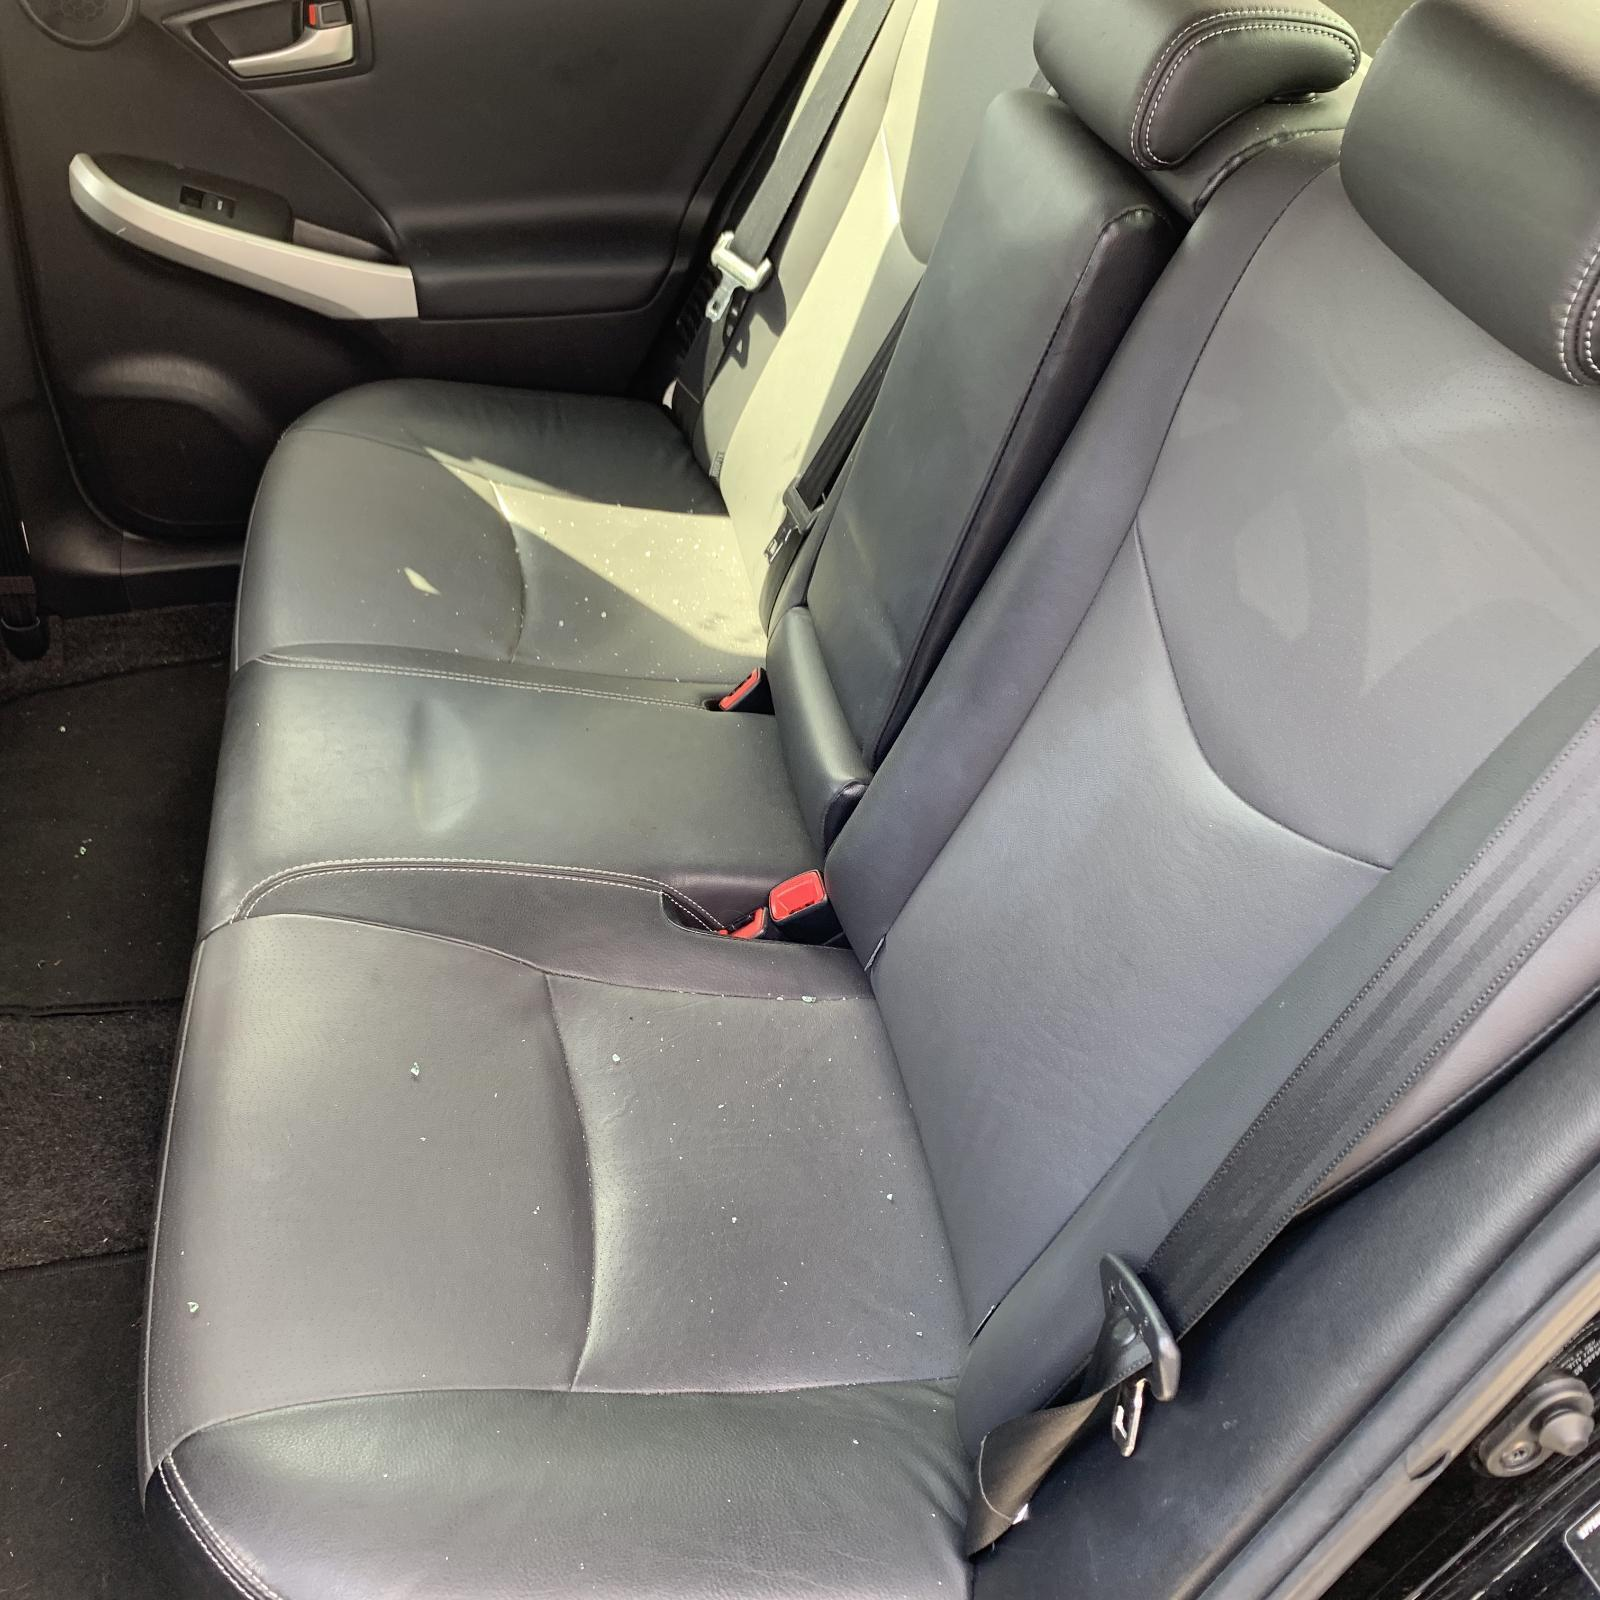 TOYOTA PRIUS, 2nd Seat (Rear Seat), LH REAR, ZVW30R, LEATHER, GREY, 07/09-12/15